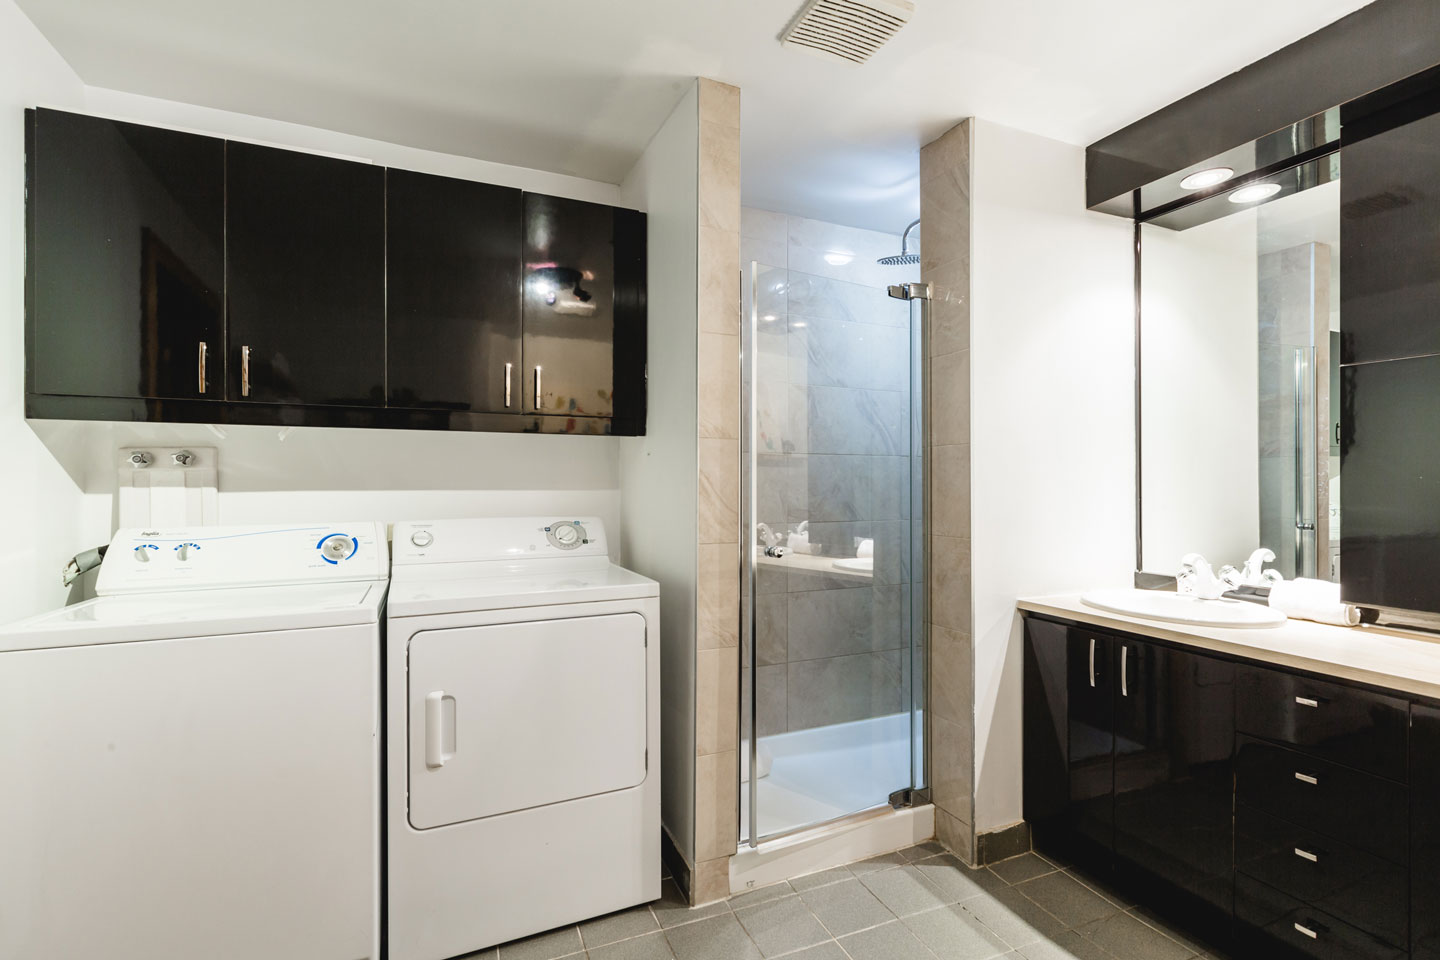 City chalet: spacious bathroom with washer and dryer